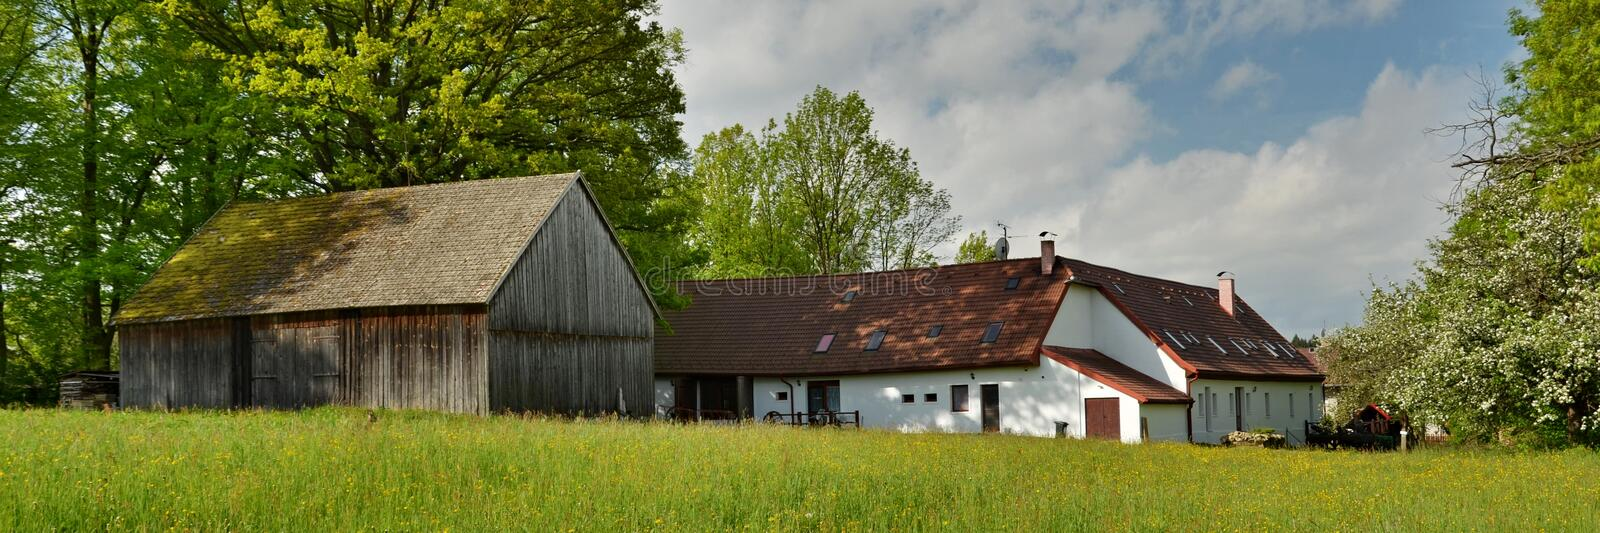 Historical Rural Buildings. In South Bohemia, Czech Republic (2013 royalty free stock photo